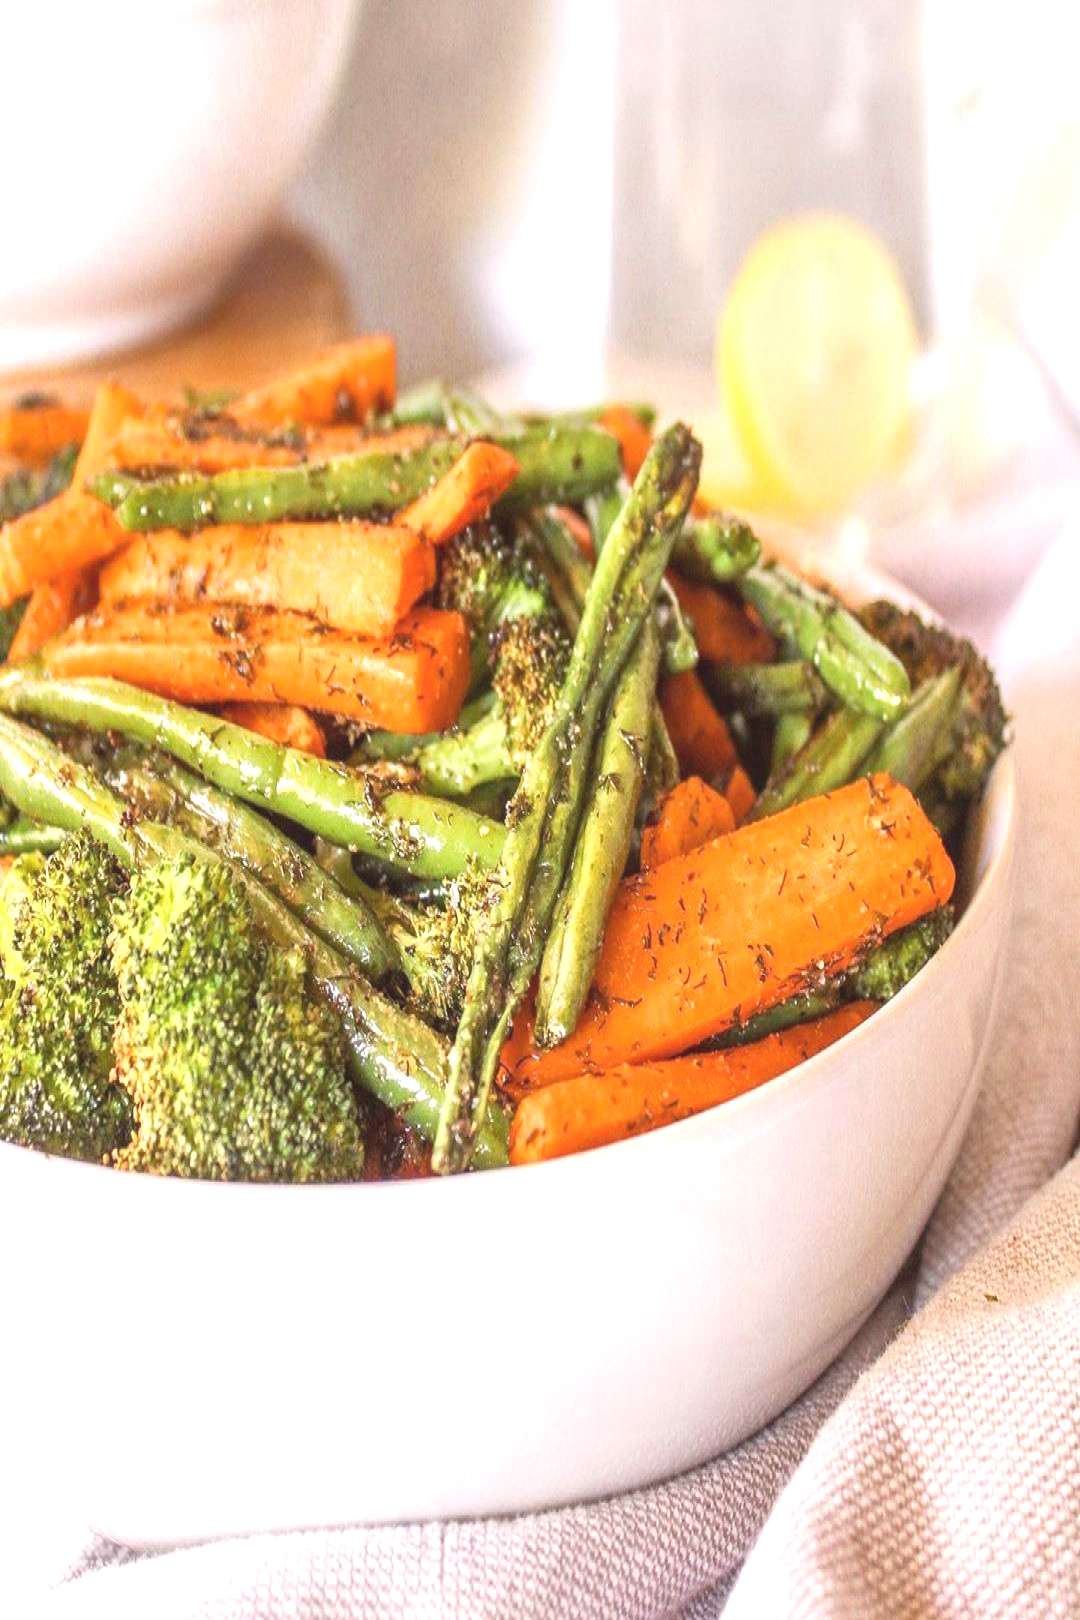 Its time to start thinking about holiday meals and these ROASTED RANCH VEGGIES are a Thanksgiving m